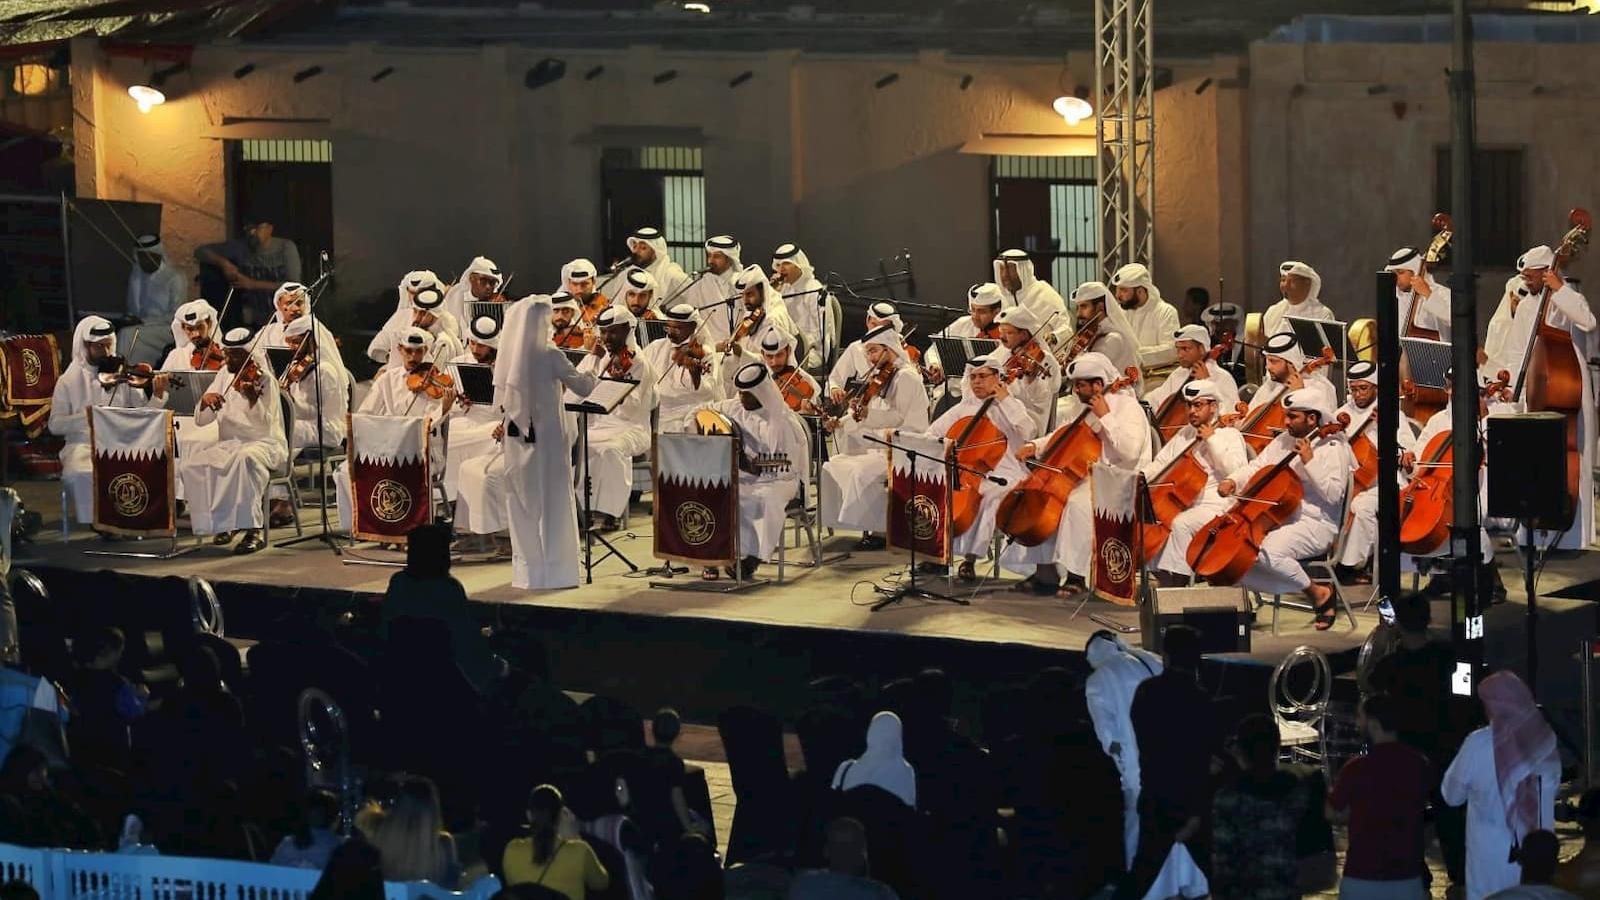 No Darb Al Saai activities on Qatar National Day this year: Organizing Committee